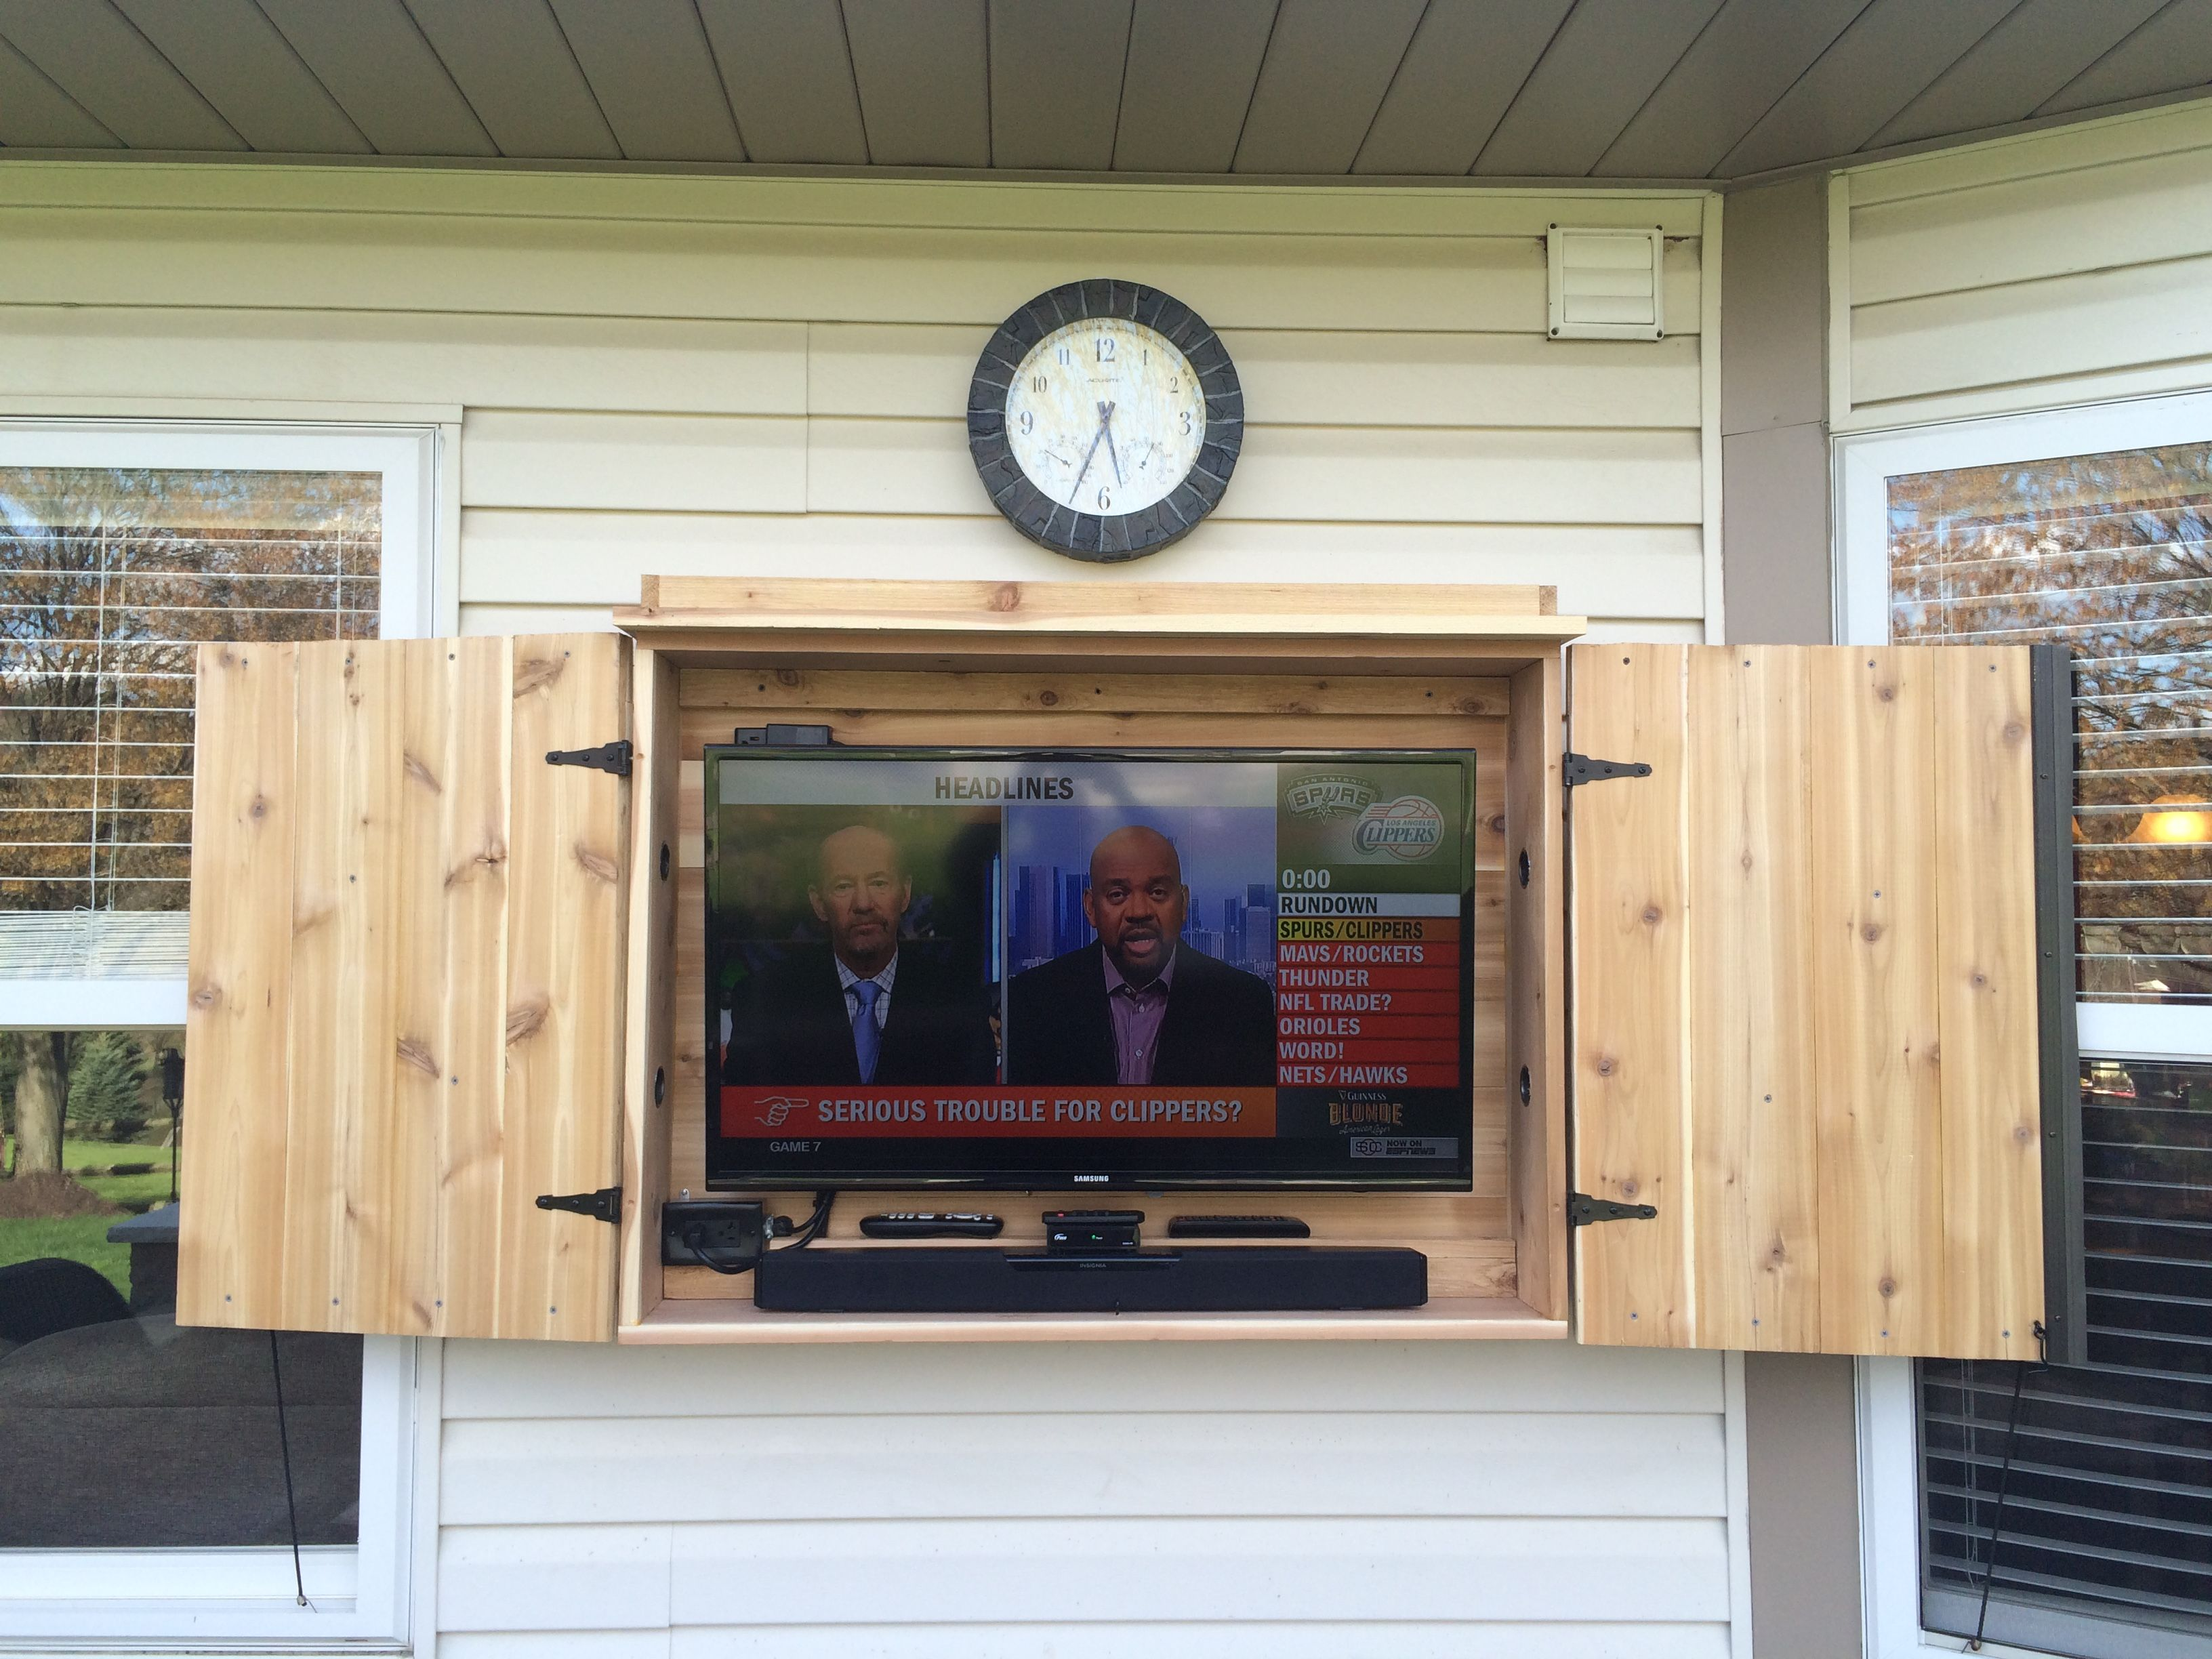 Outdoor Tv Cabinet Made Of Cedar Outdoor Tv Cabinet Apartment Patio Decor Outdoor Cabinet Diy